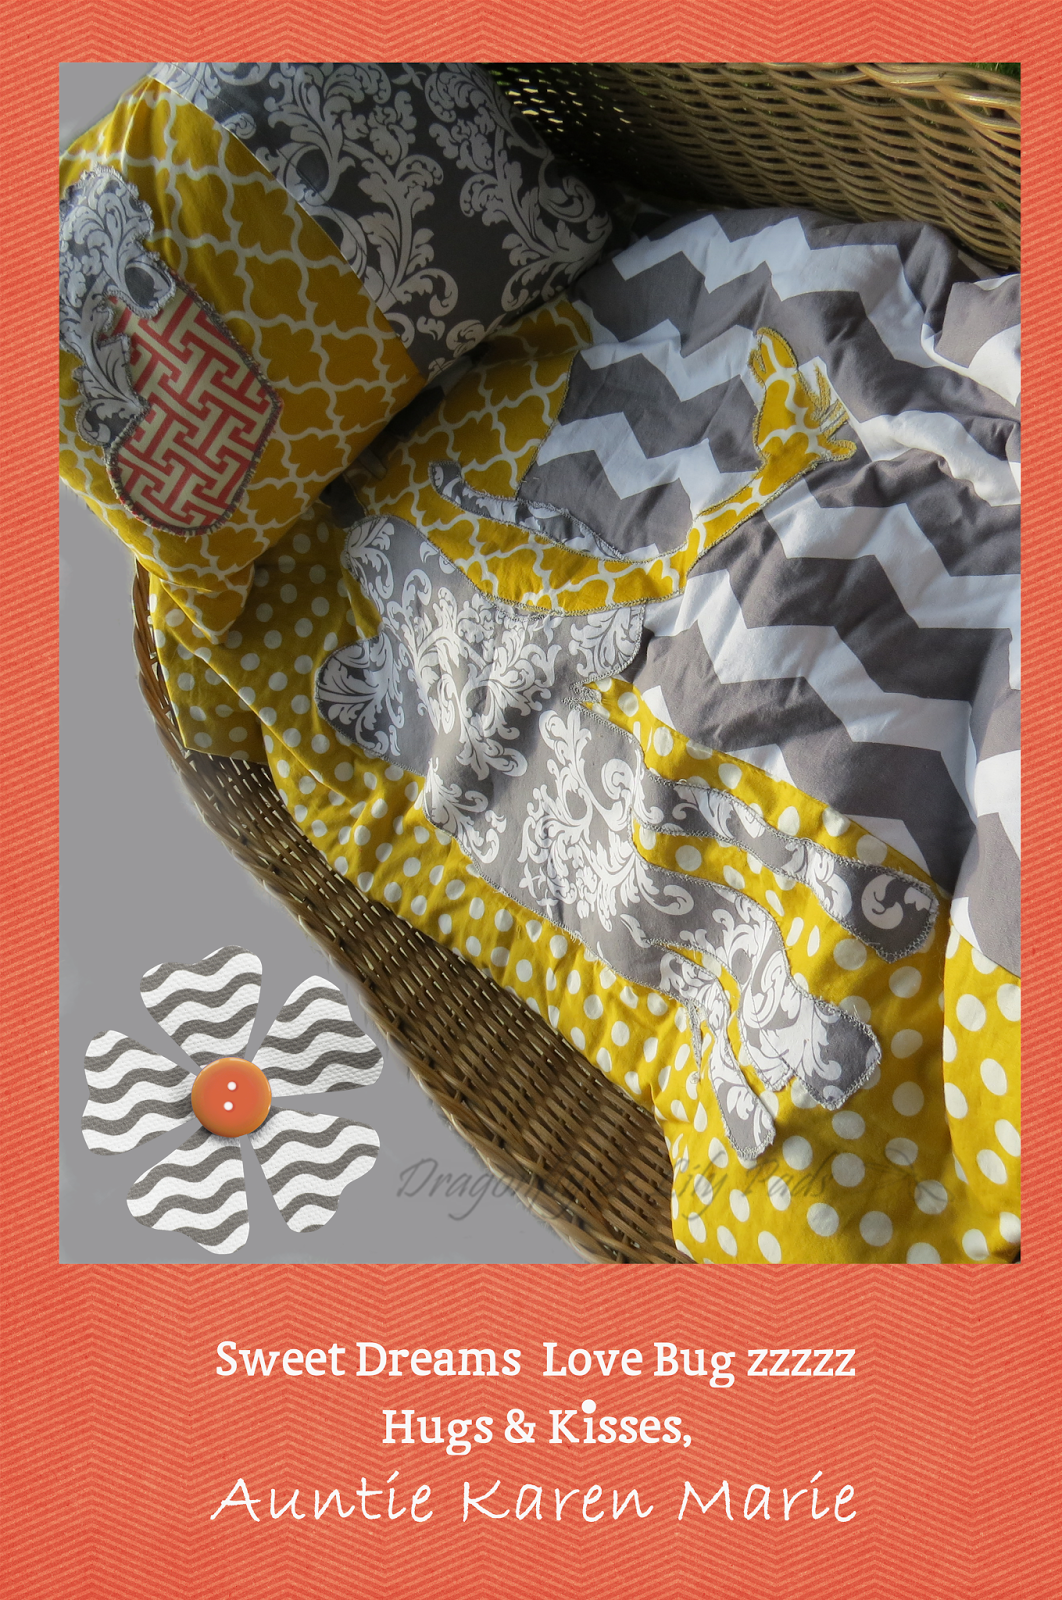 Antique  baby Basket net, Quilt, Travel Pillow, Fabric, Gray, White, Yellow, Coral, Polka dot, Chevron, Trellis, Swirl, Gray thread, Top stitch, Blanket Stitch, Flower, Button, Gray and White wavy, avy